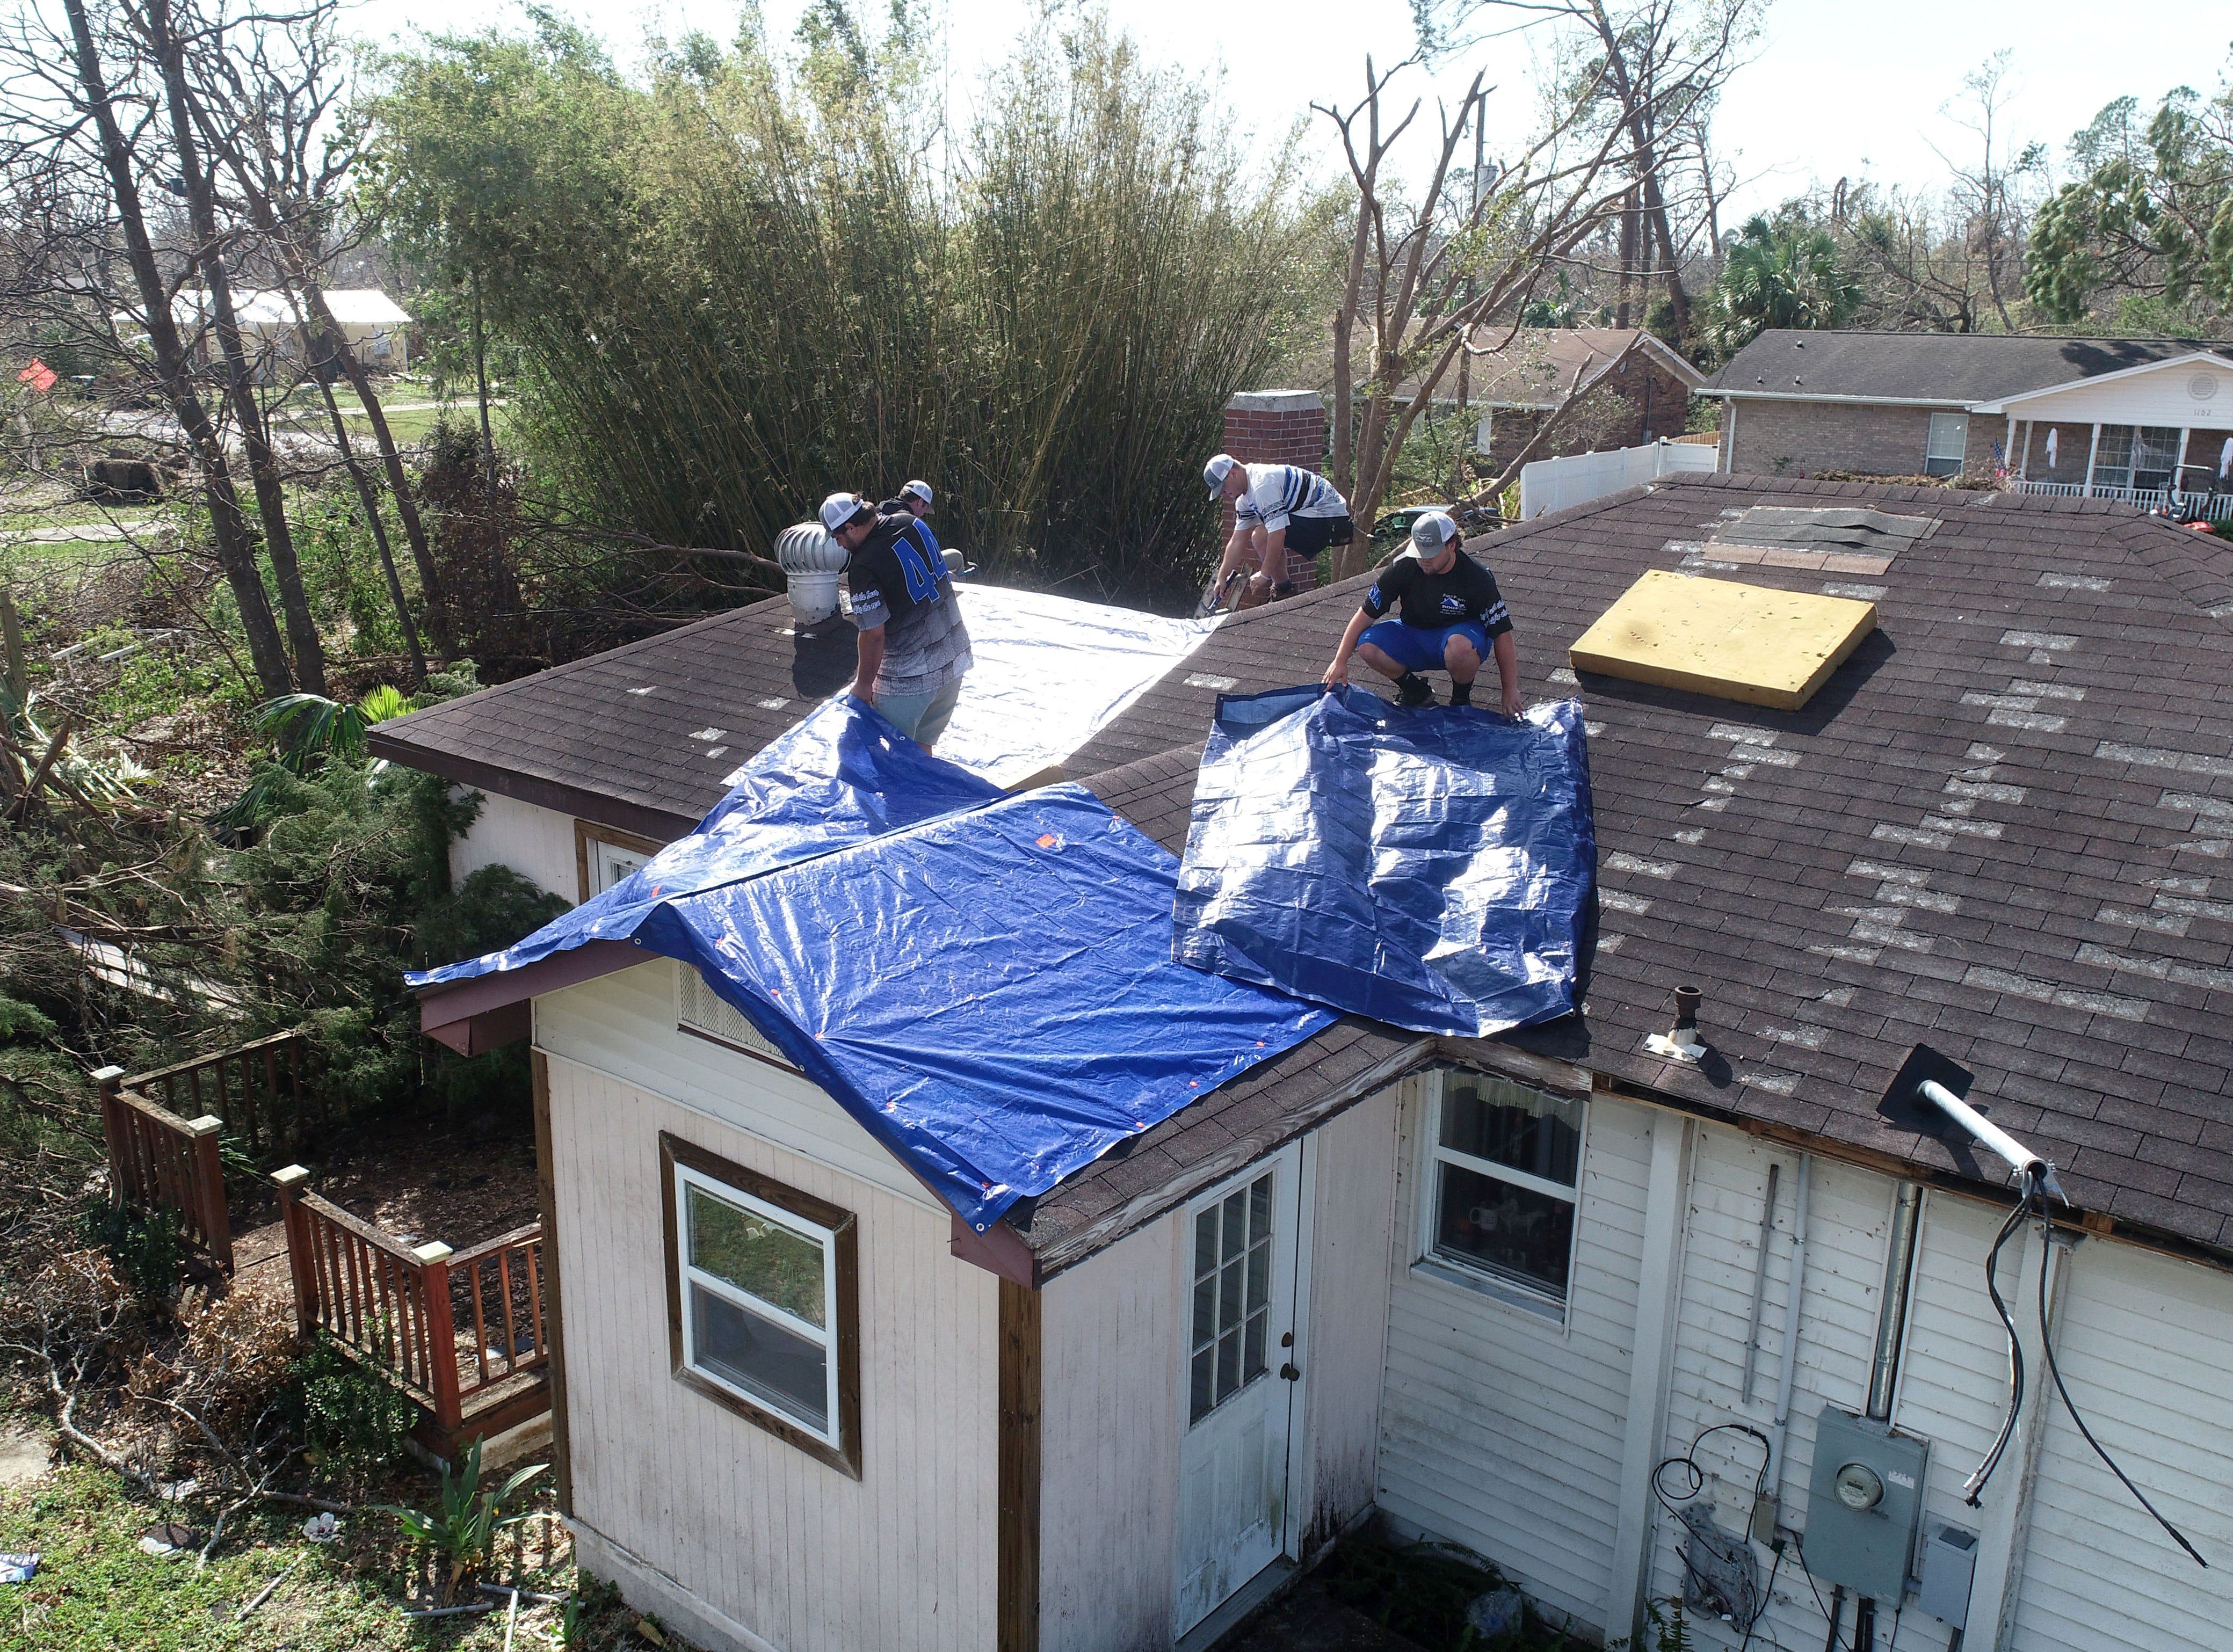 Workers place tarps on the roof of a home Wednesday, Oct. 17, 2018, in Lynn Haven, Florida. Residents have been working to recovery from Hurricane Michael, one week after it made landfall in the Florida Panhandle.